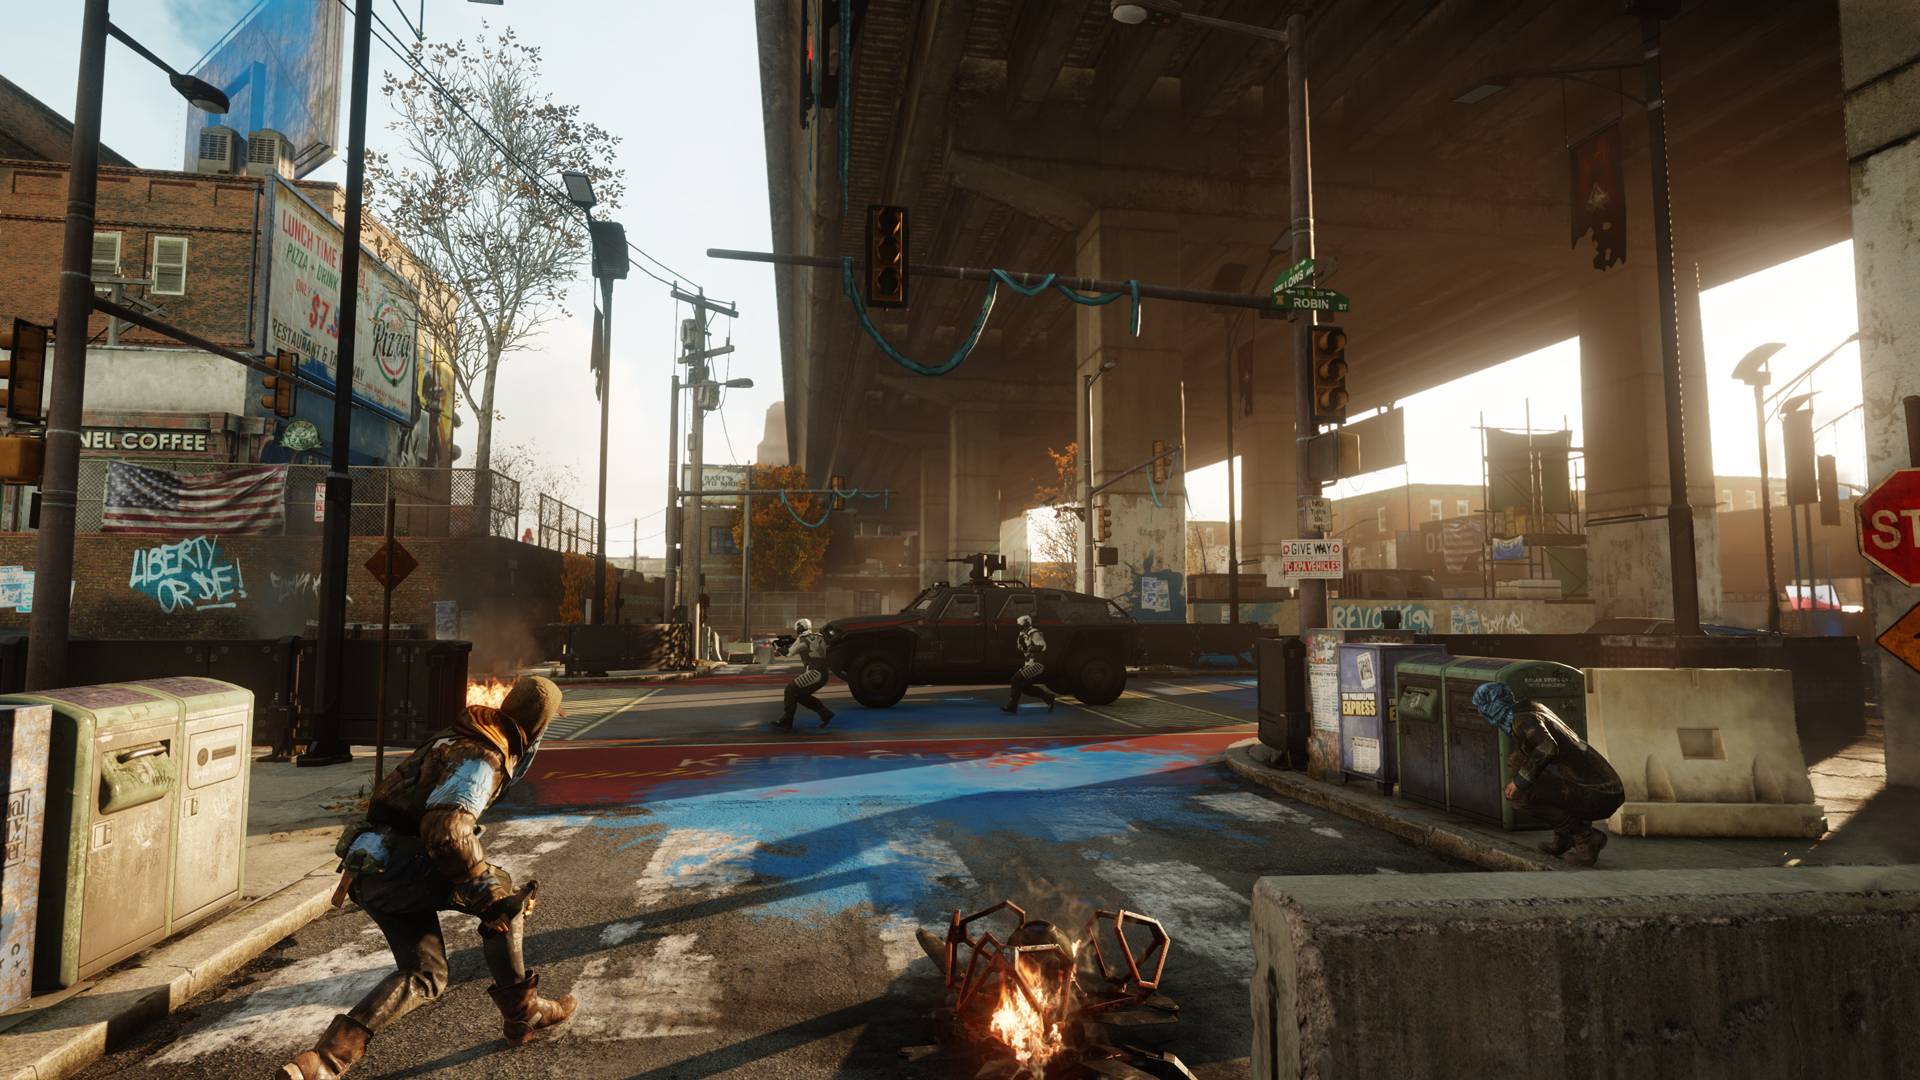 http://www.mihangame.com/wp-content/uploads/2016/04/MihanGame-Homefront-The-Revolution3.jpg